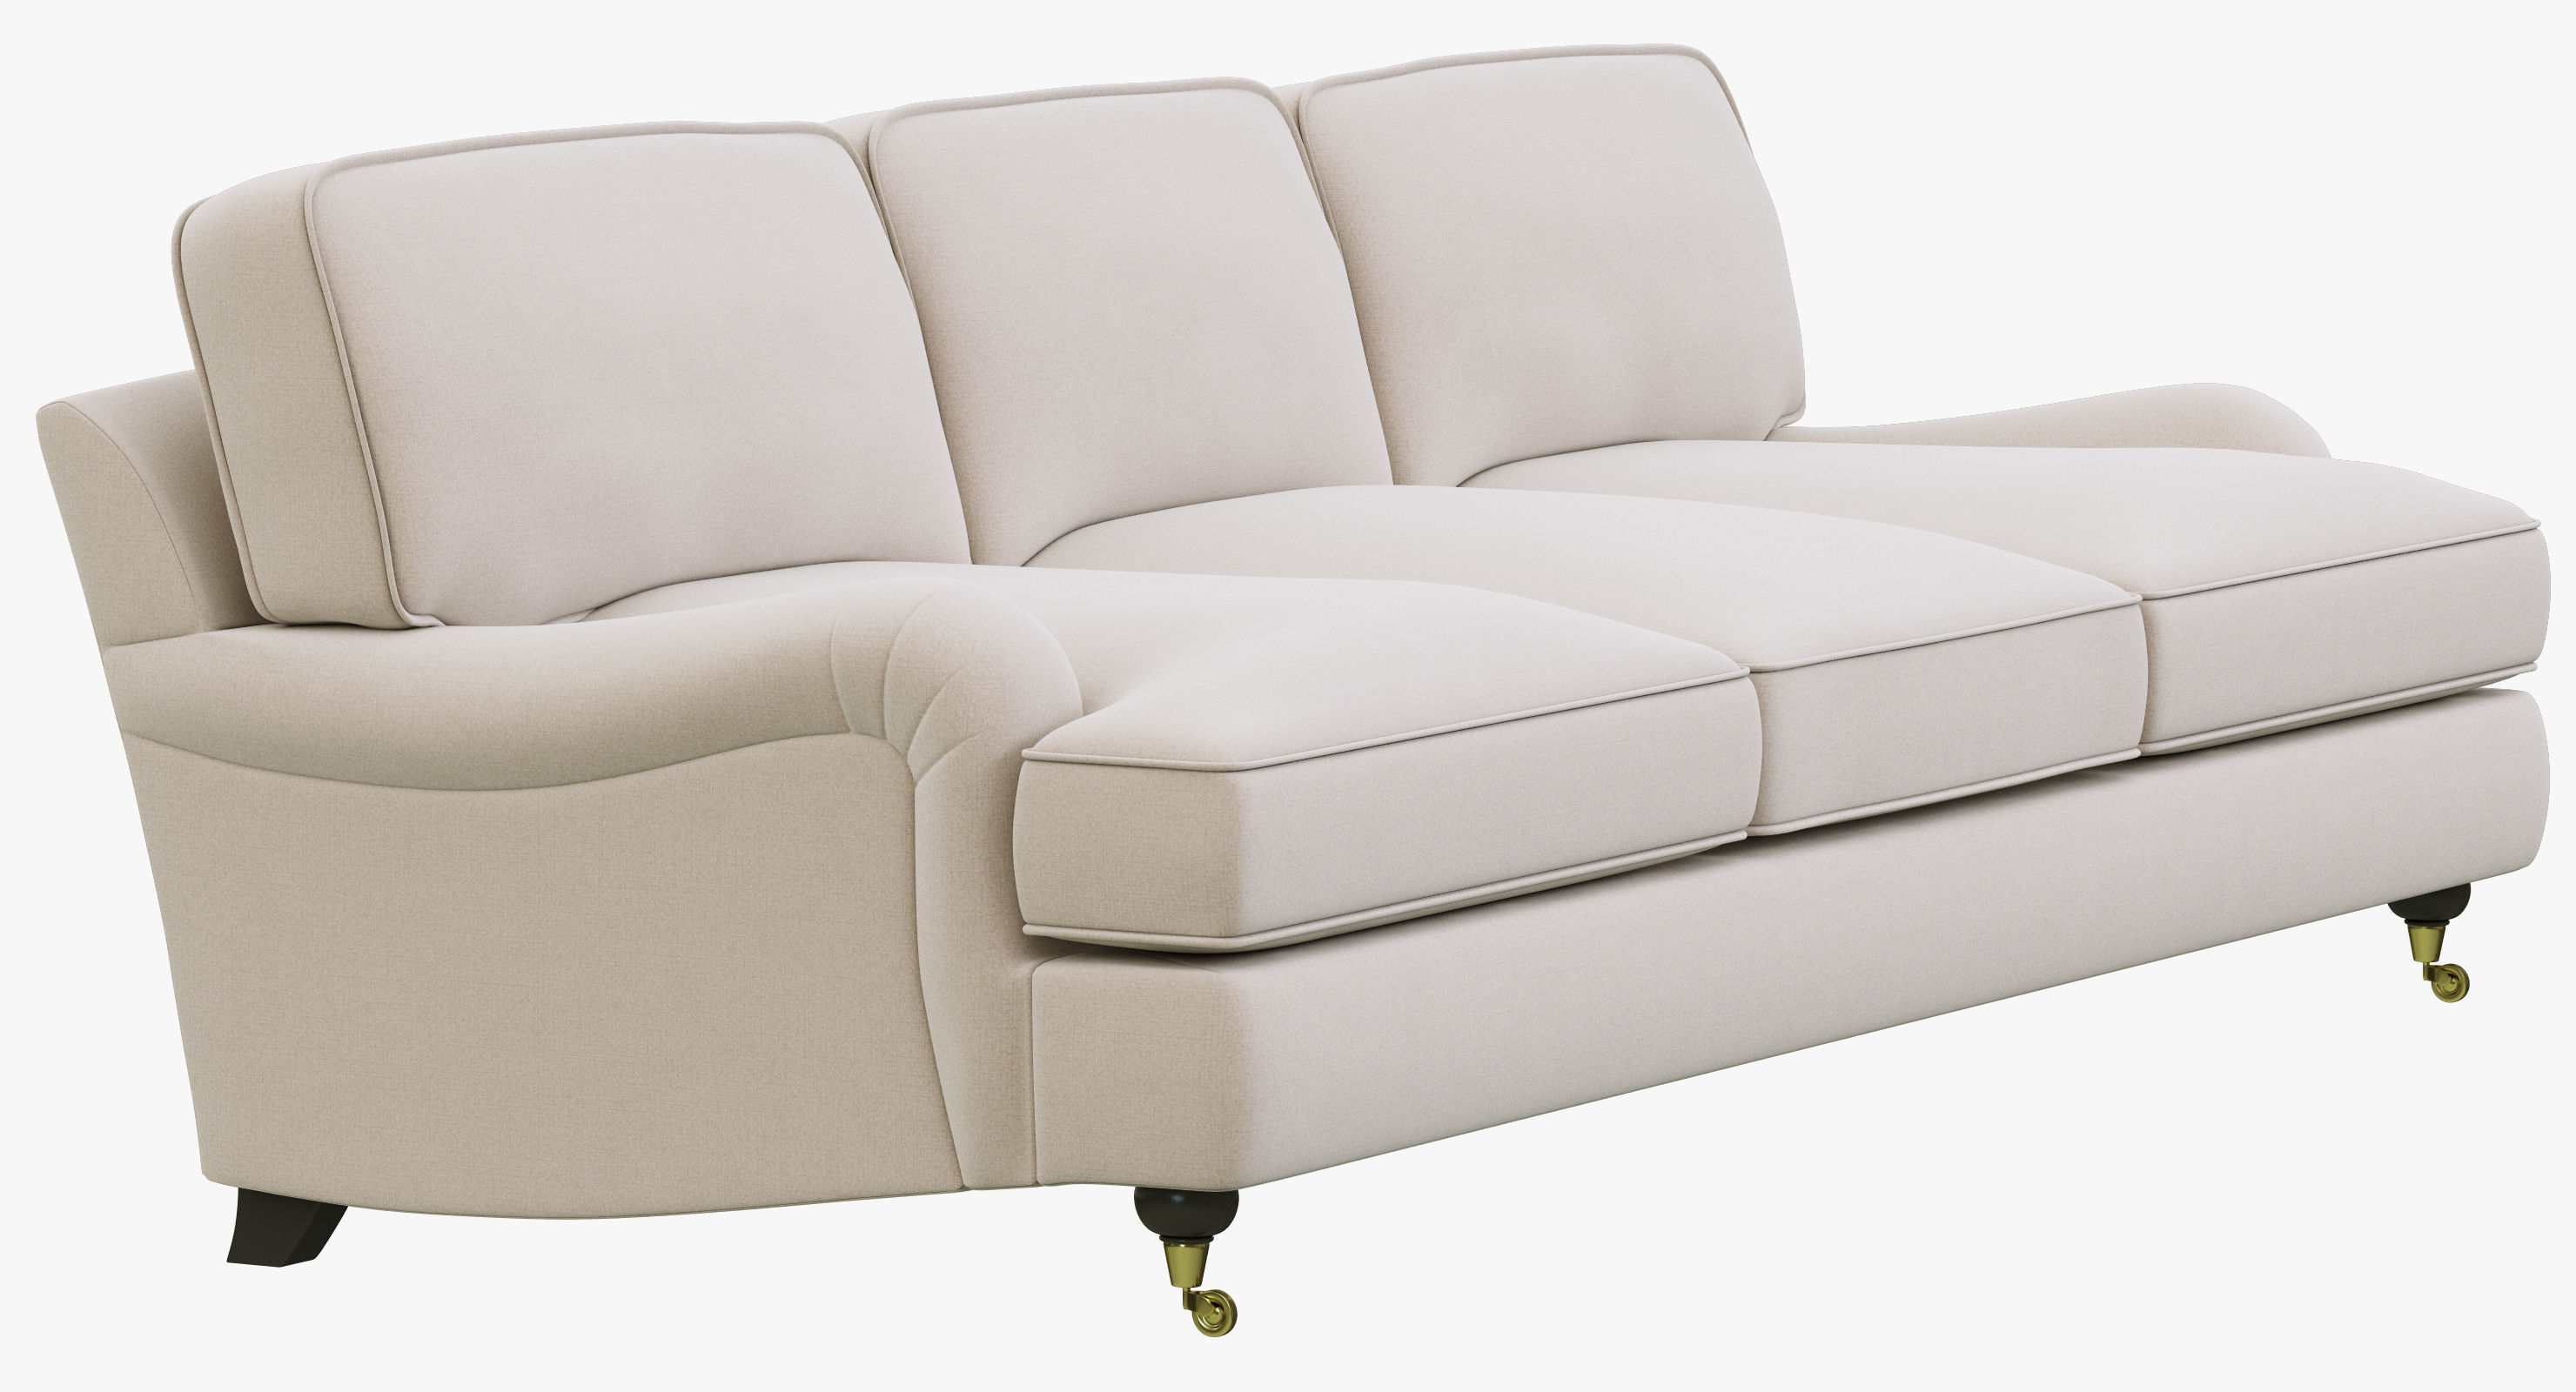 Restoration Hardware Roll Arm Sofa